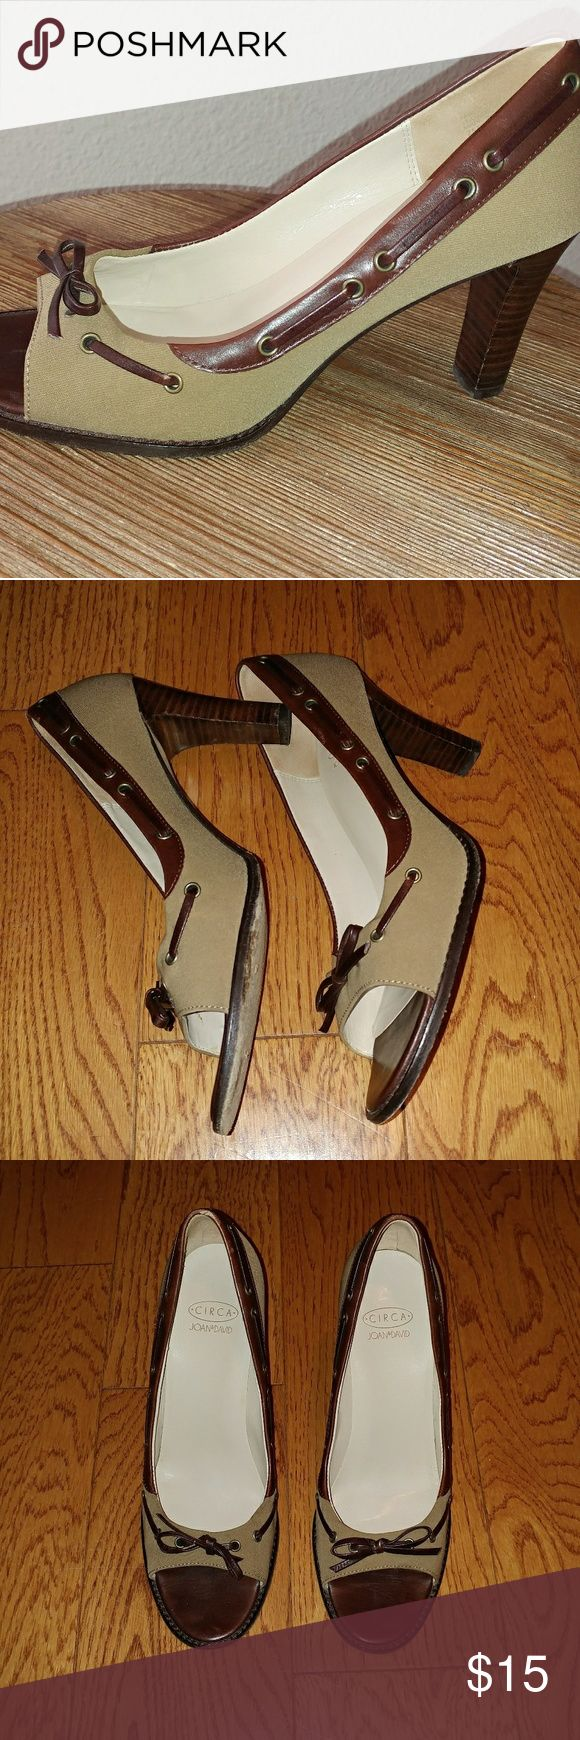 Circa Joan & David heels Open toed canvas and leather pumps. Size 7. Joan & David Shoes Heels